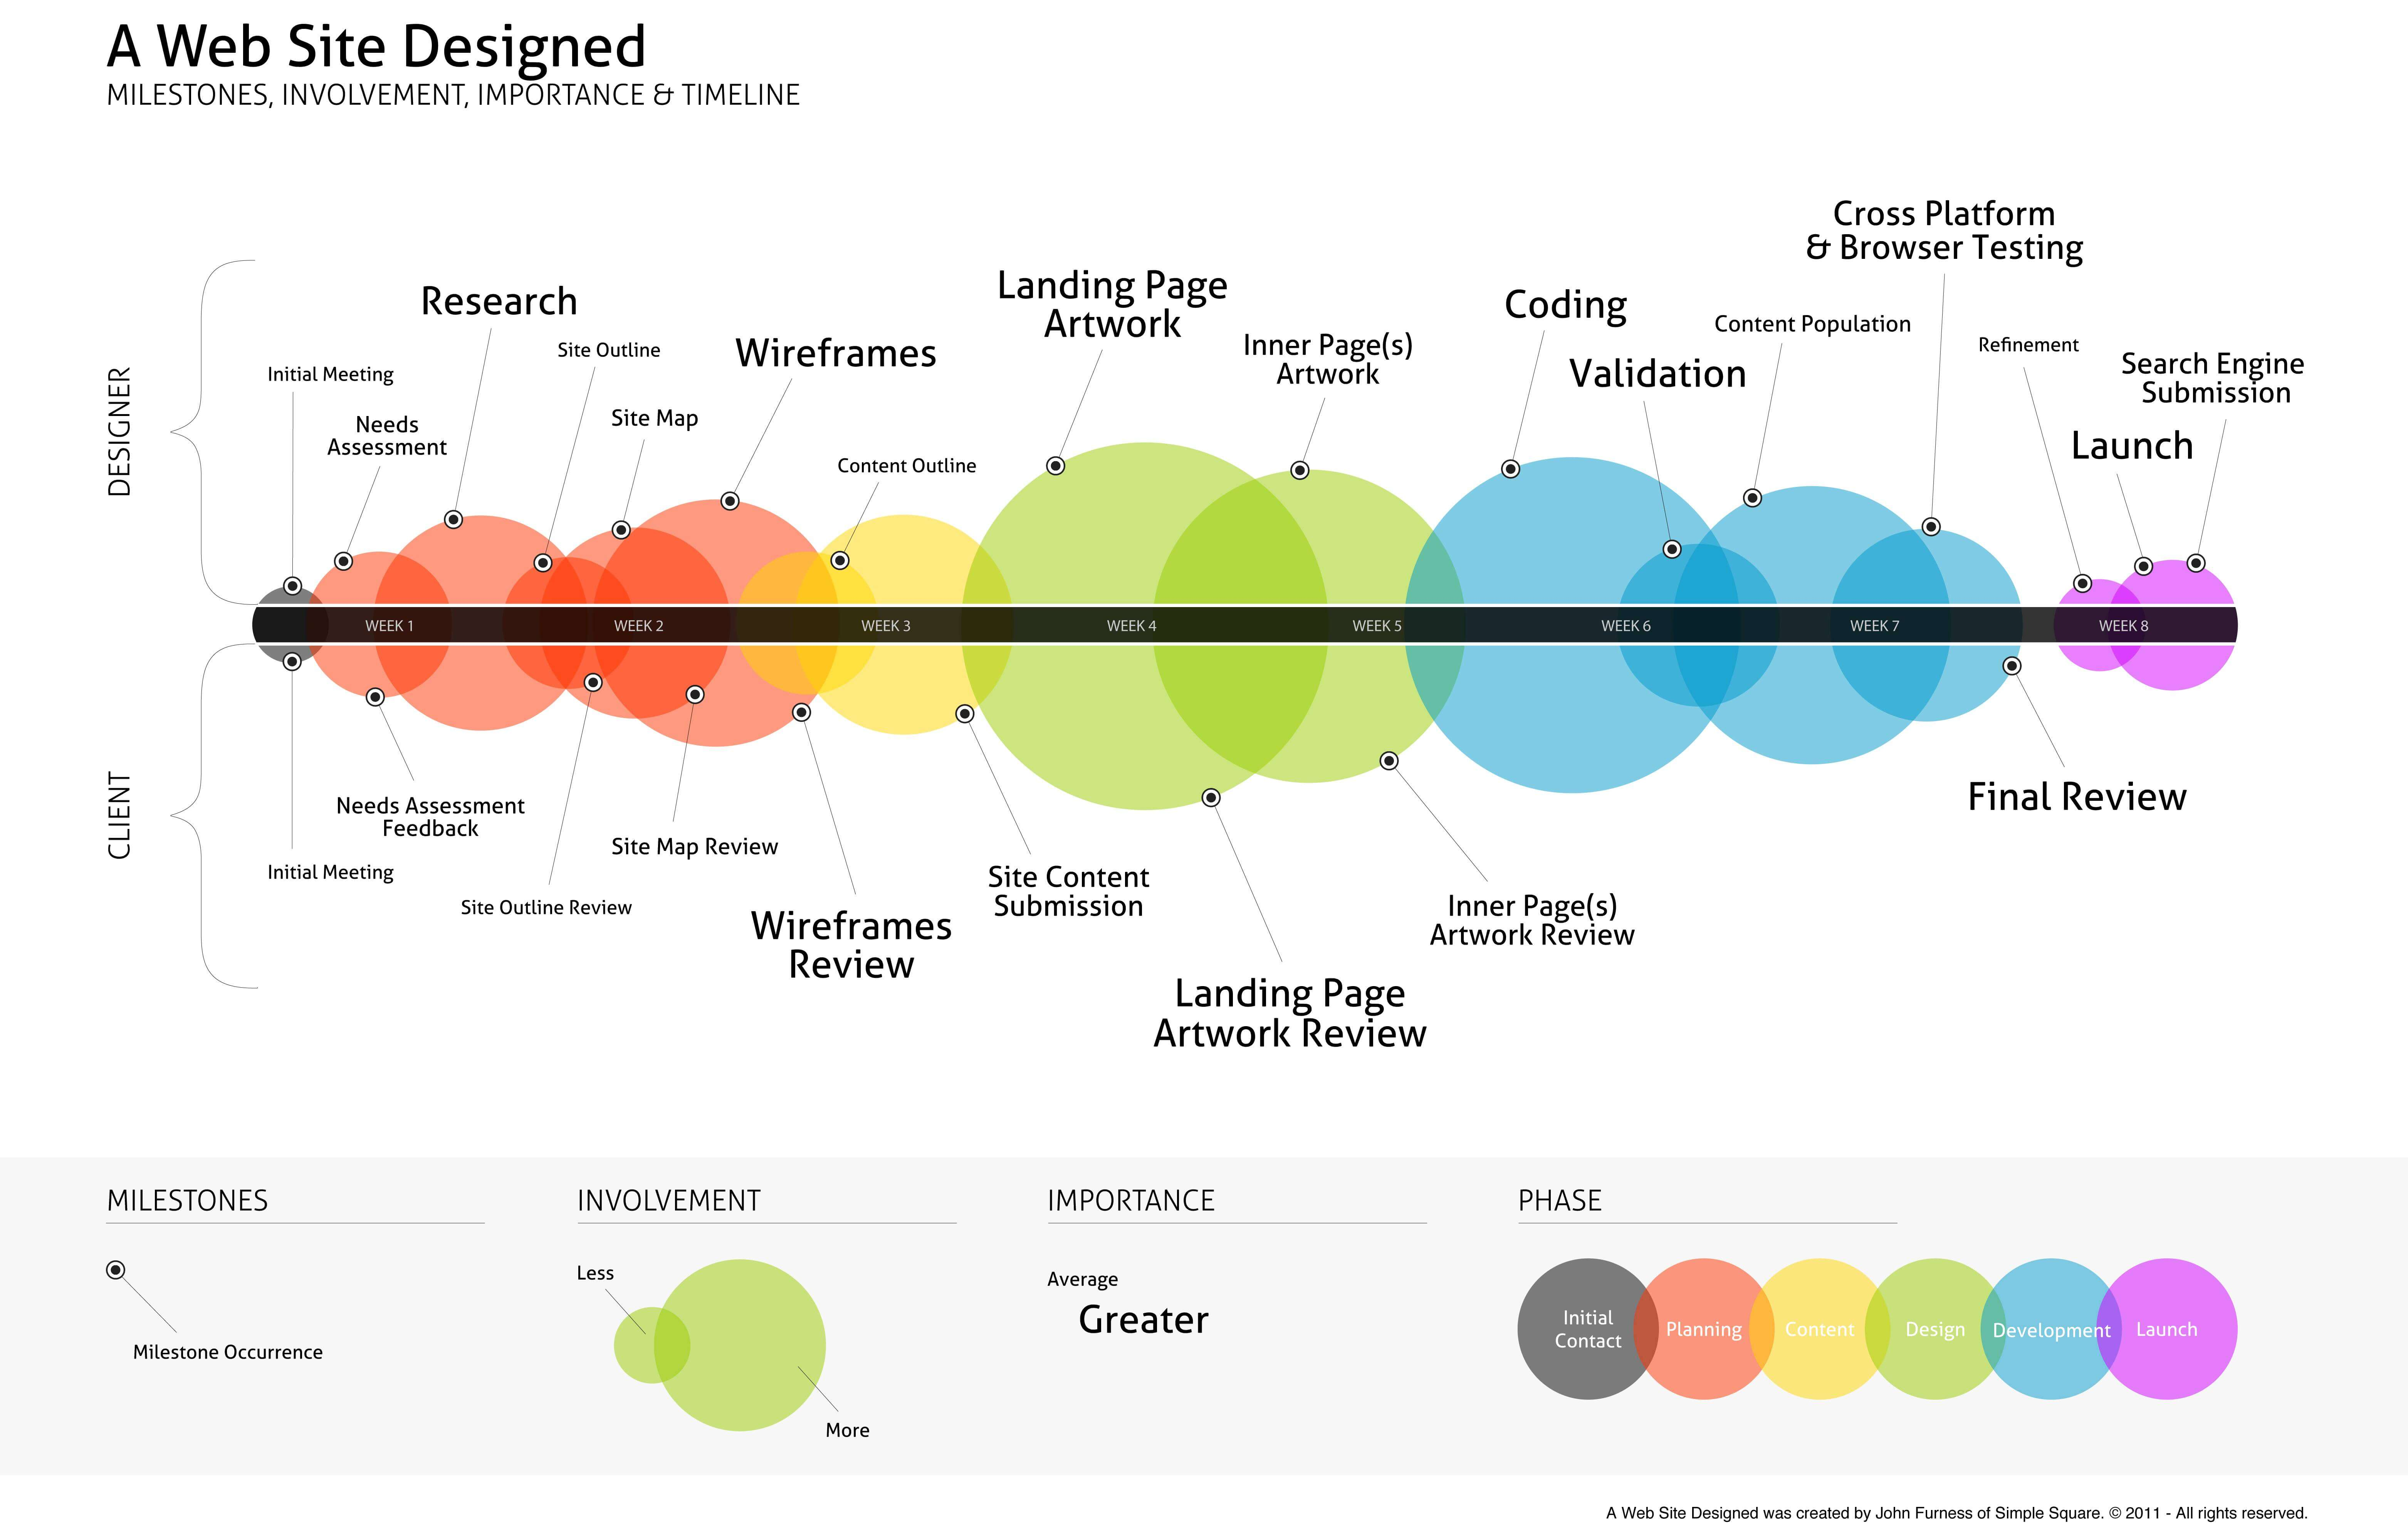 Website design and development stages